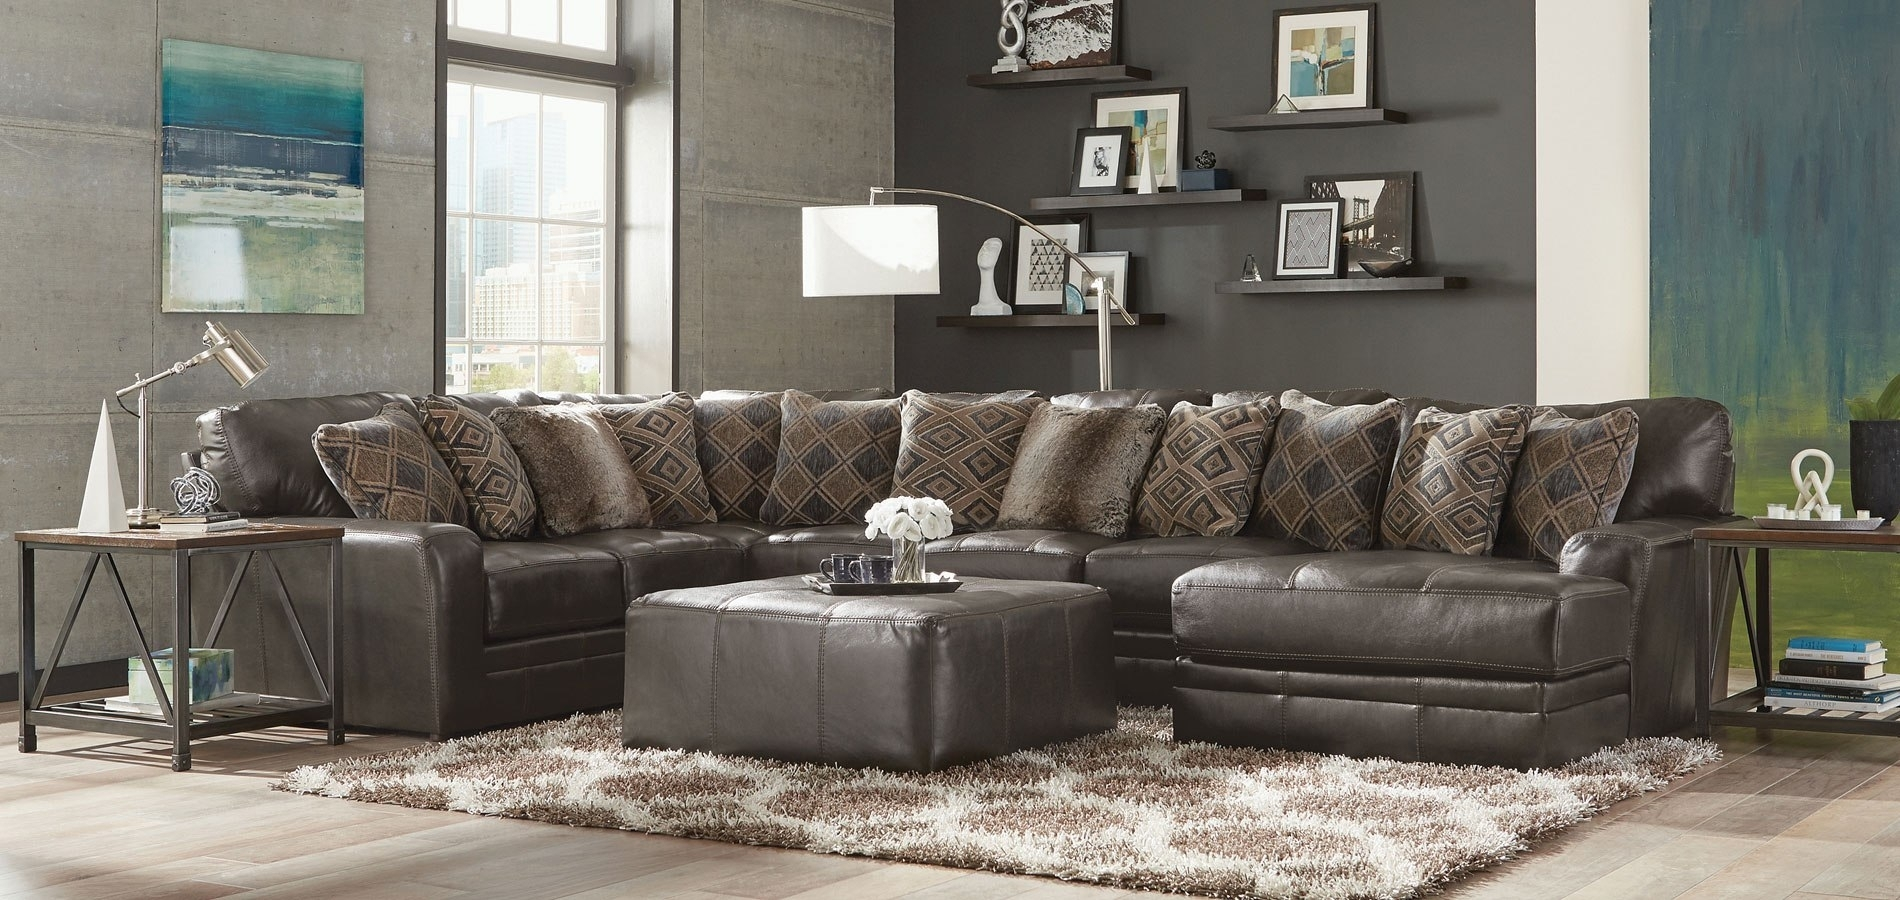 Denali Modular Sectional (Steel) Jackson Furniture | Furniture Cart Inside Denali Light Grey 6 Piece Reclining Sectionals With 2 Power Headrests (Image 10 of 25)